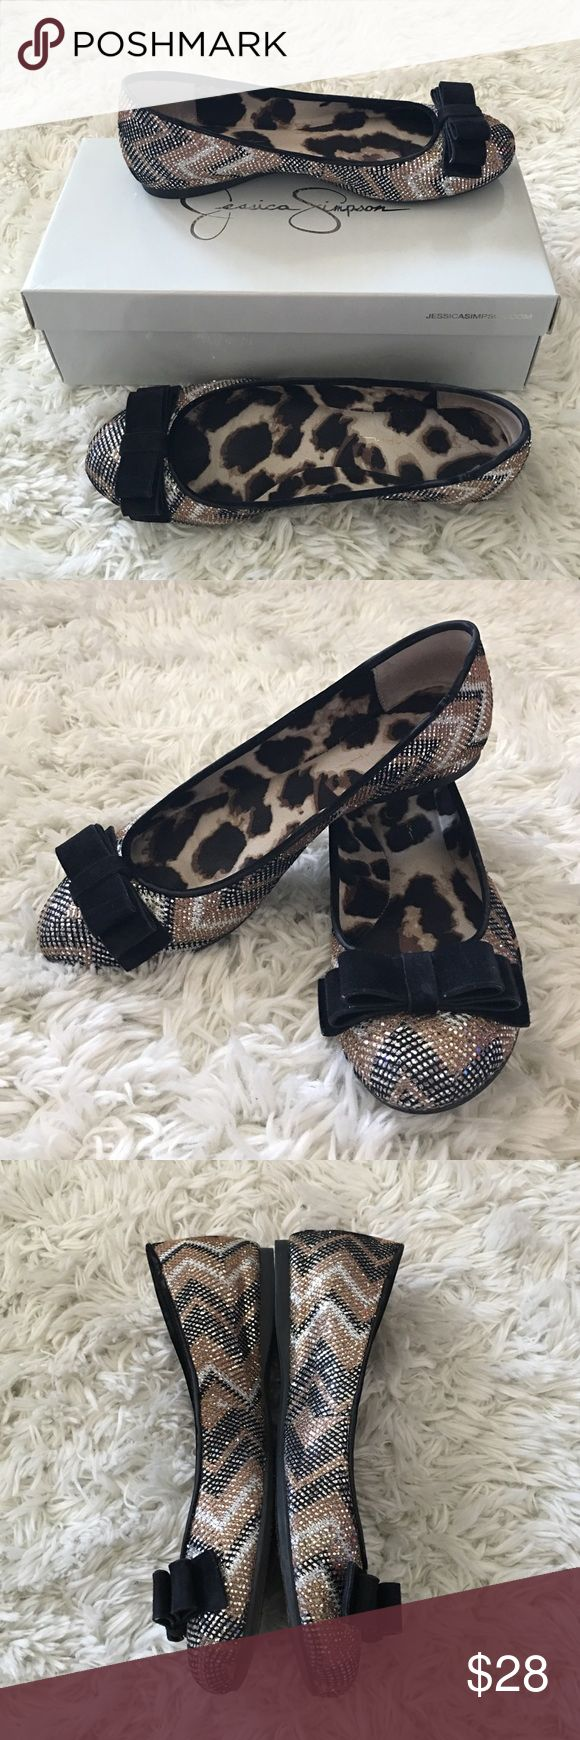 Jessica Simpson Flat shoes Comfortable flats for parties Jessica Simpson Jessica Simpson Shoes Flats & Loafers